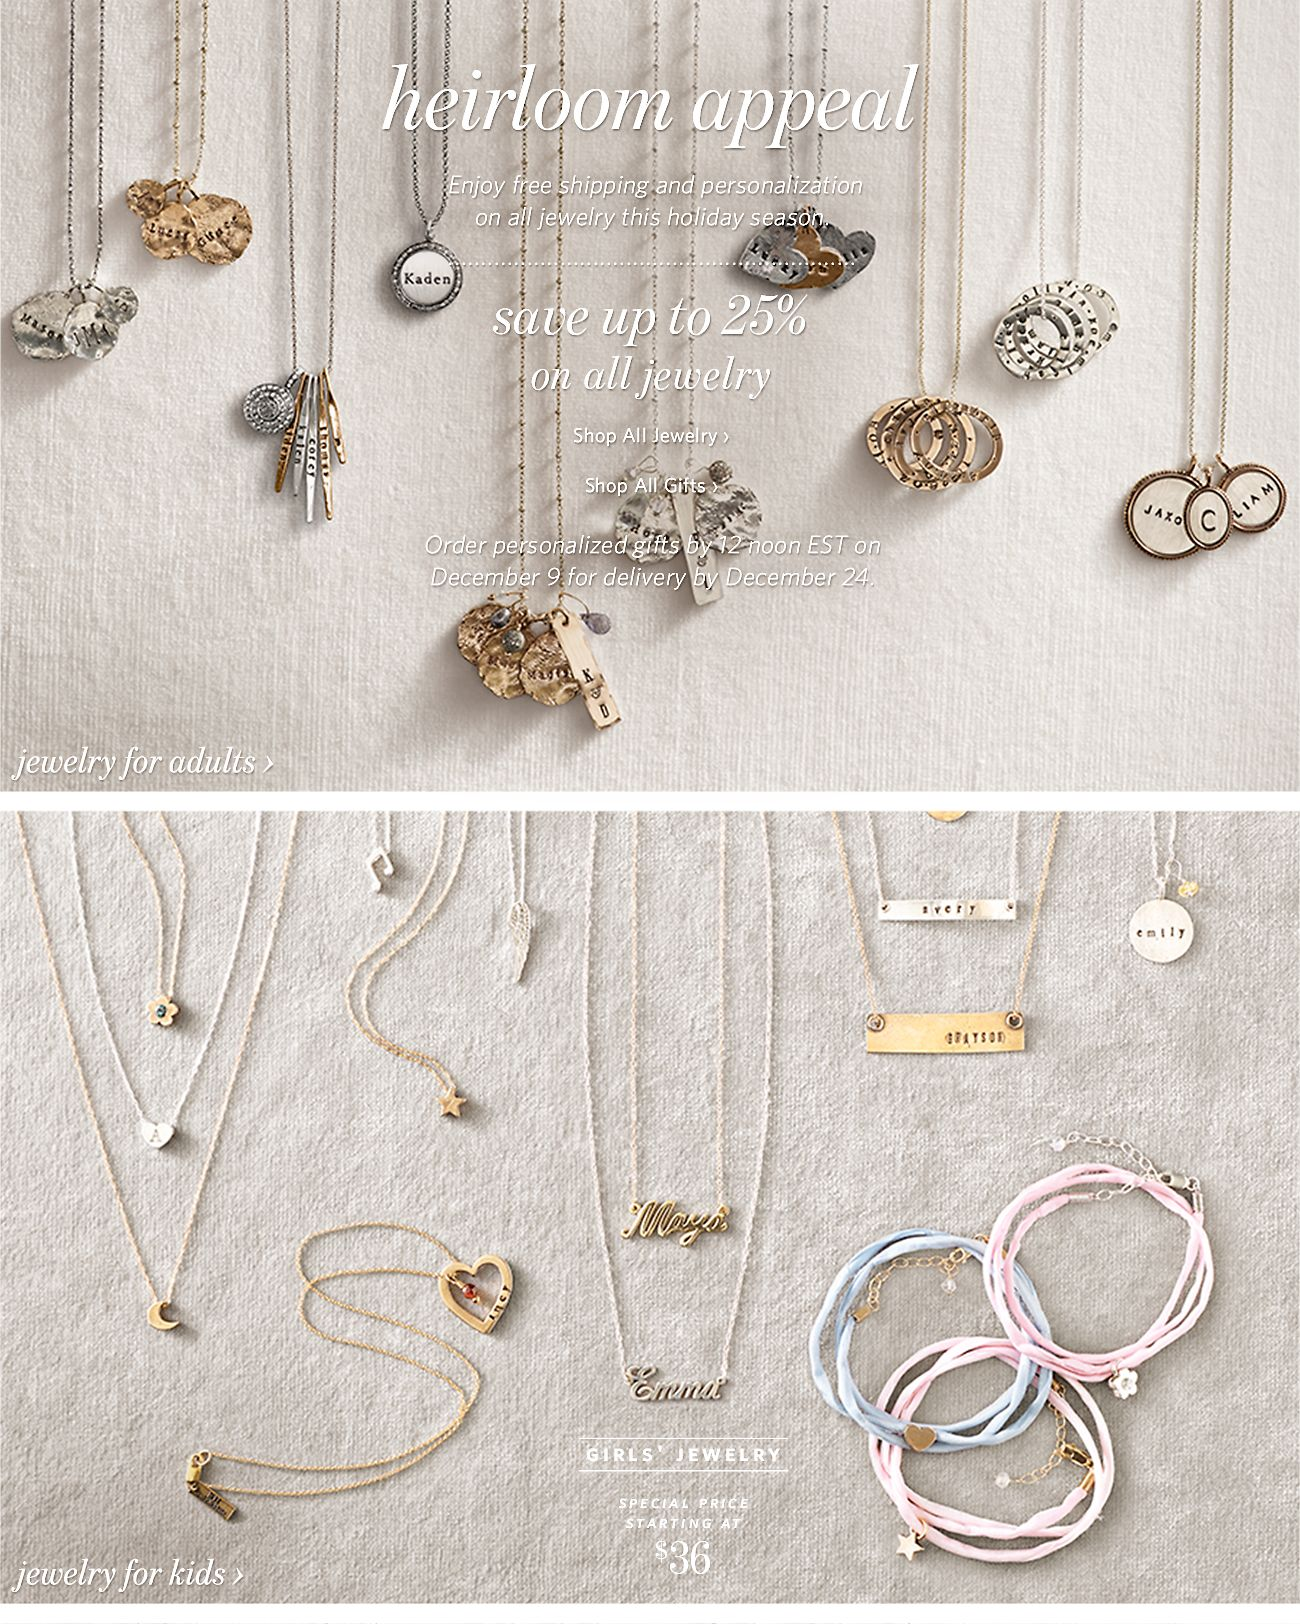 Restoration hardware save up to 25 on personalized jewelry gifts free shipping and personalization on all jewelry negle Image collections